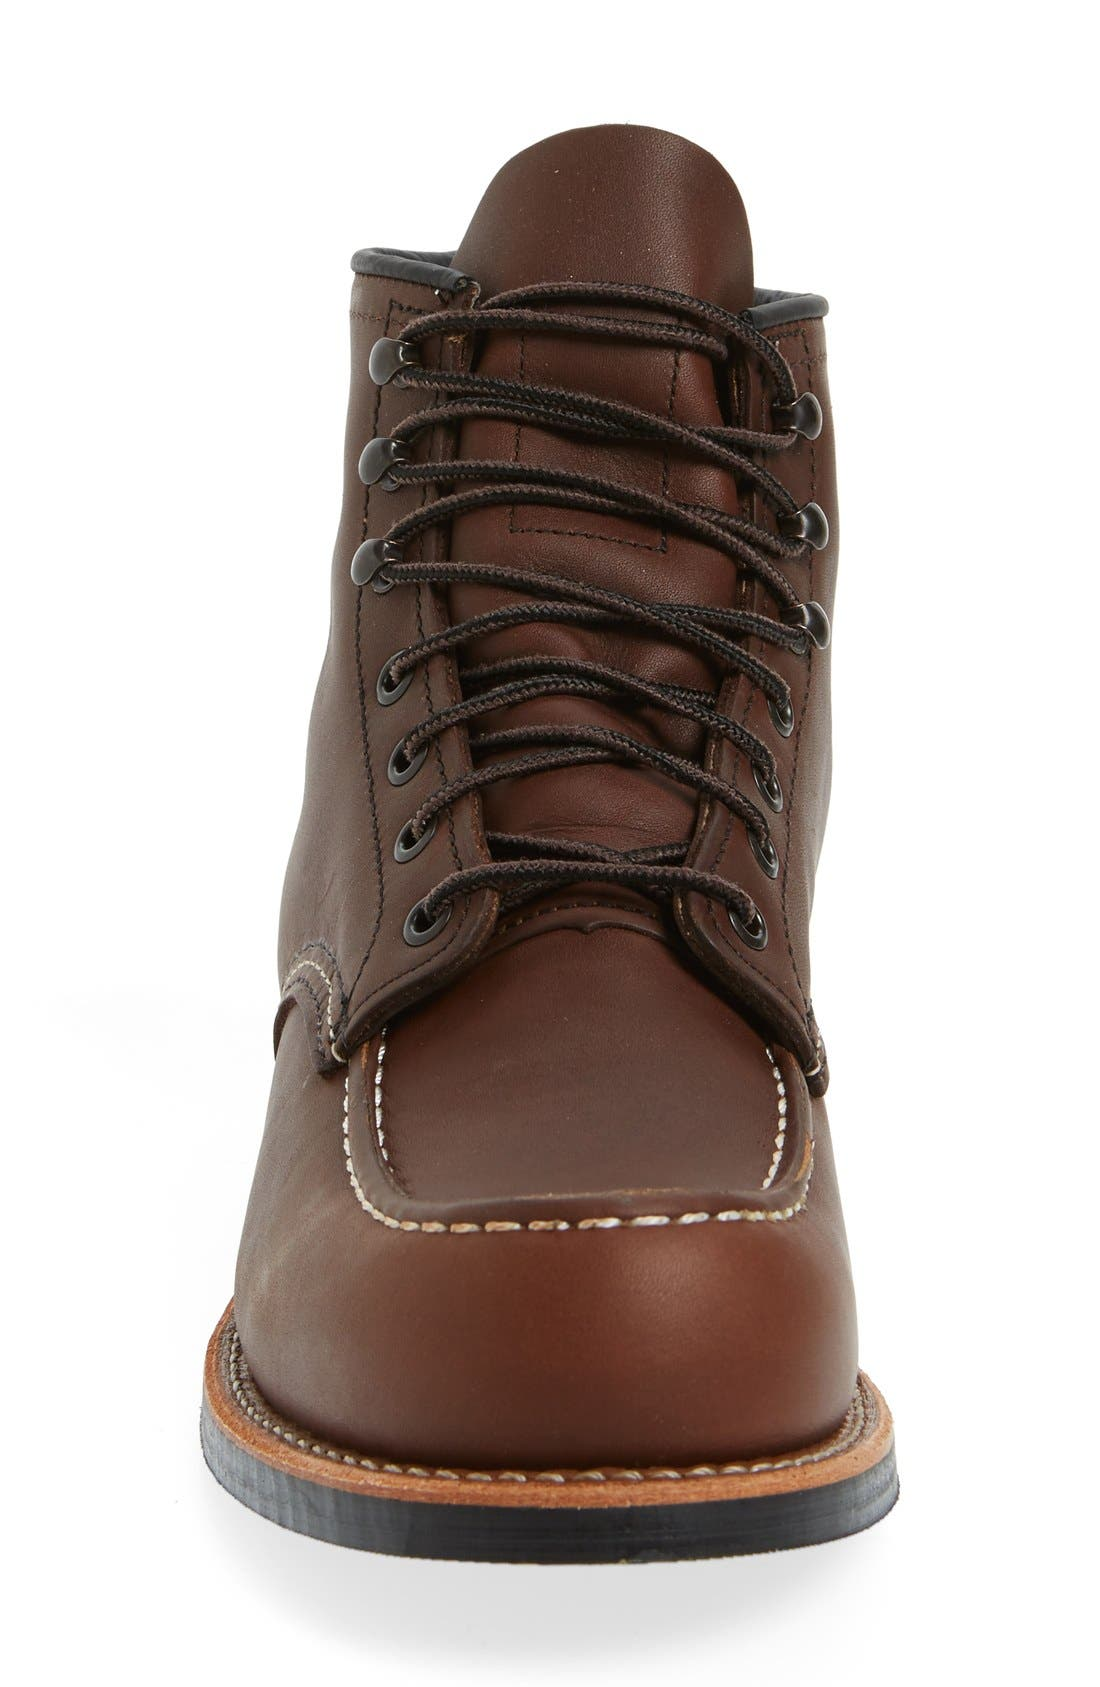 'Cooper' Moc Toe Boot,                             Alternate thumbnail 3, color,                             Amber Leather